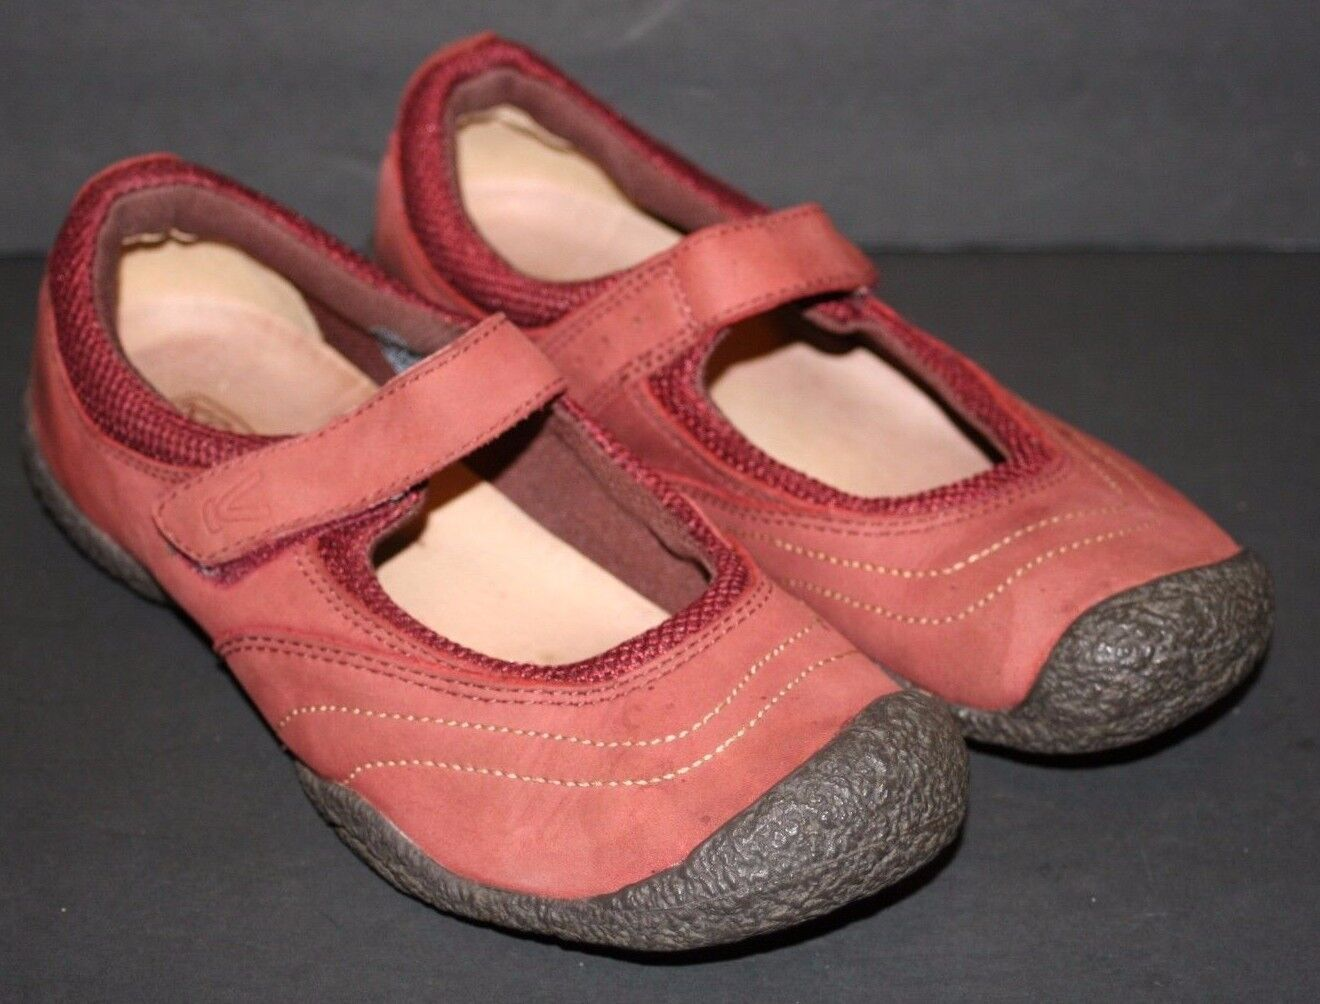 Pre-worn Women's KEEN Red  Amsterdam  Sporty Mary Janes US 7.5,